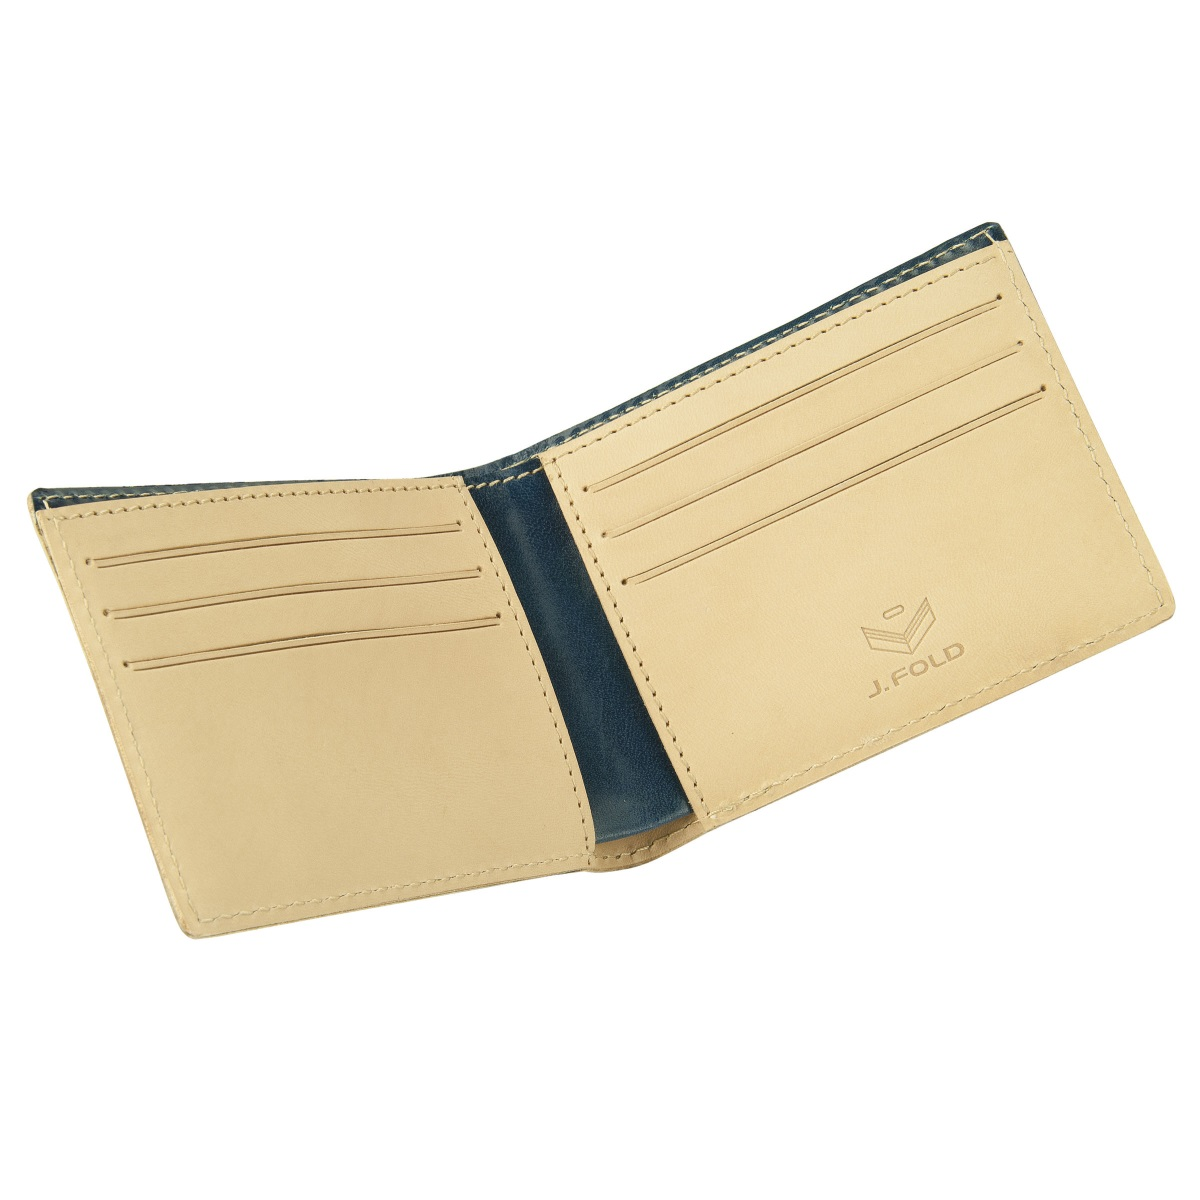 J.FOLD Superglaze Leather Wallet - Cobalt